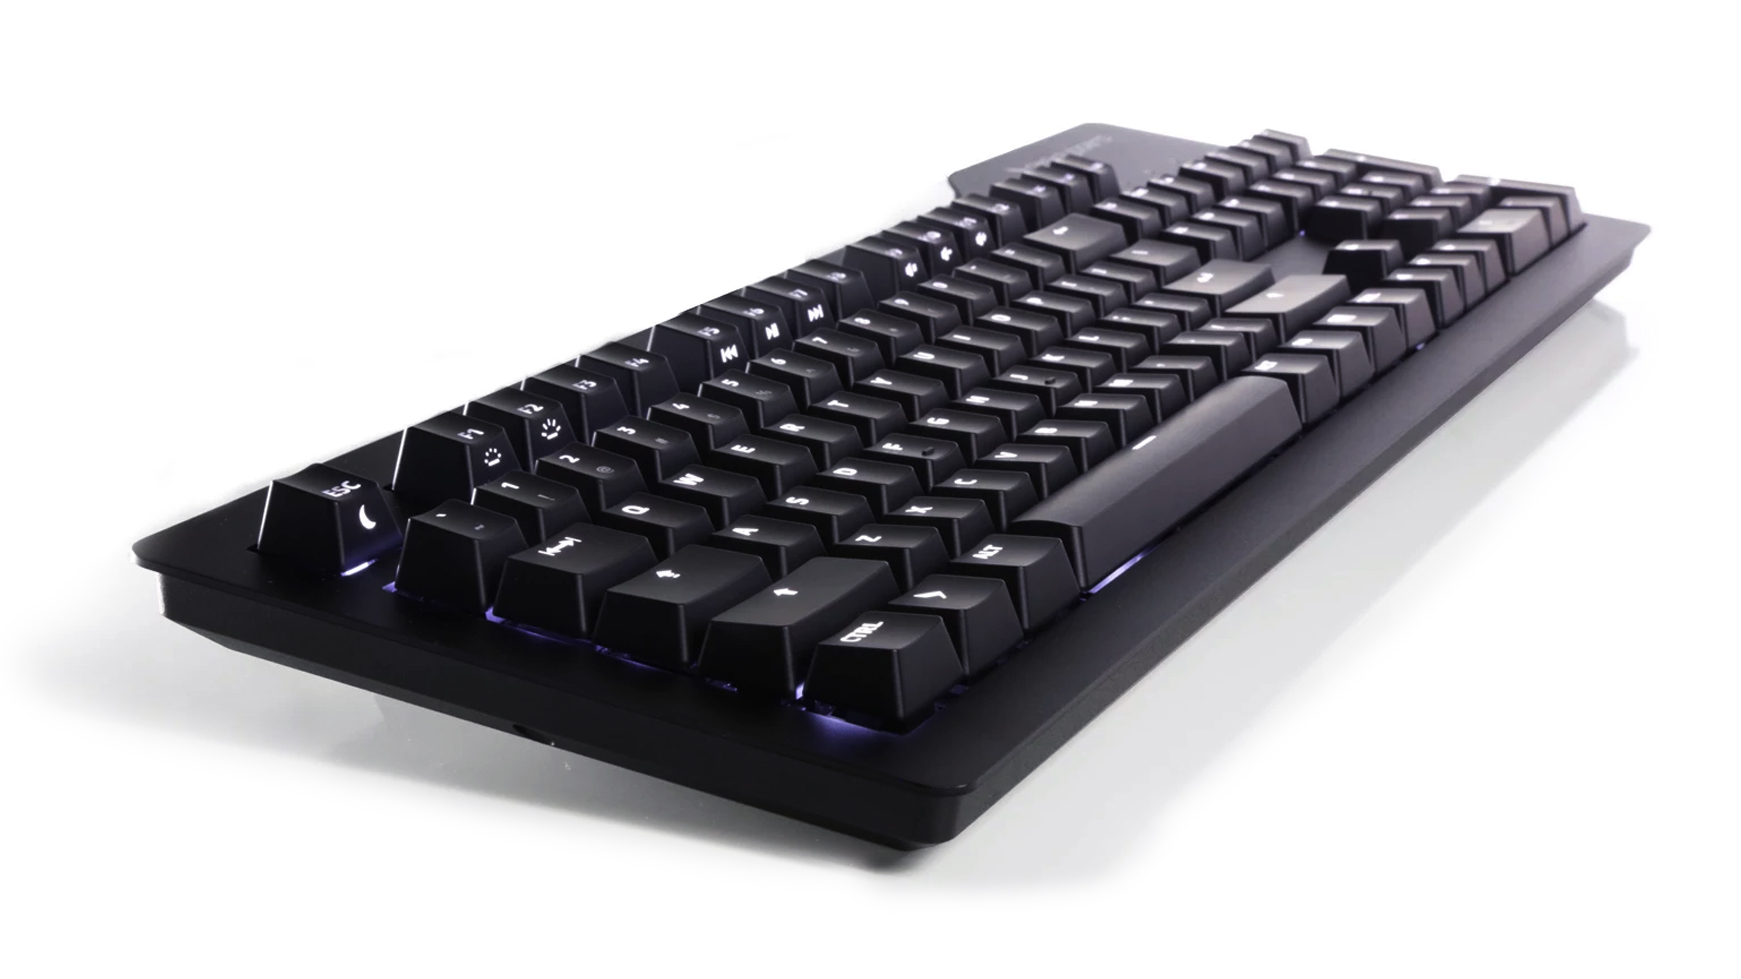 angle-prime13-mechanical-keyboard